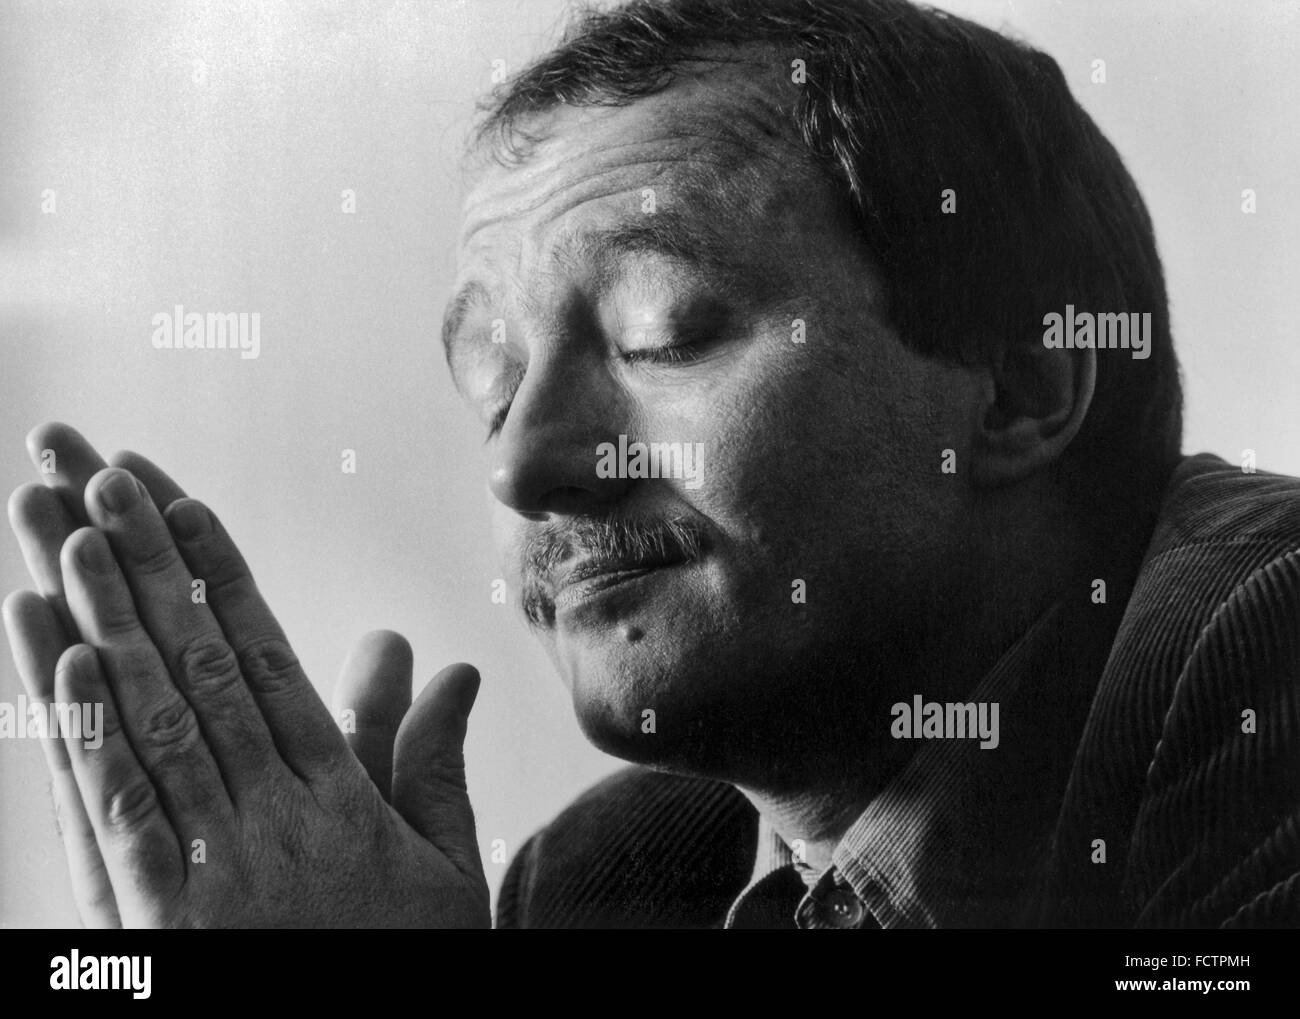 Kenneth Robert Livingstone (born 17 June 1945) is an English politician who was Mayor of London - Stock Image